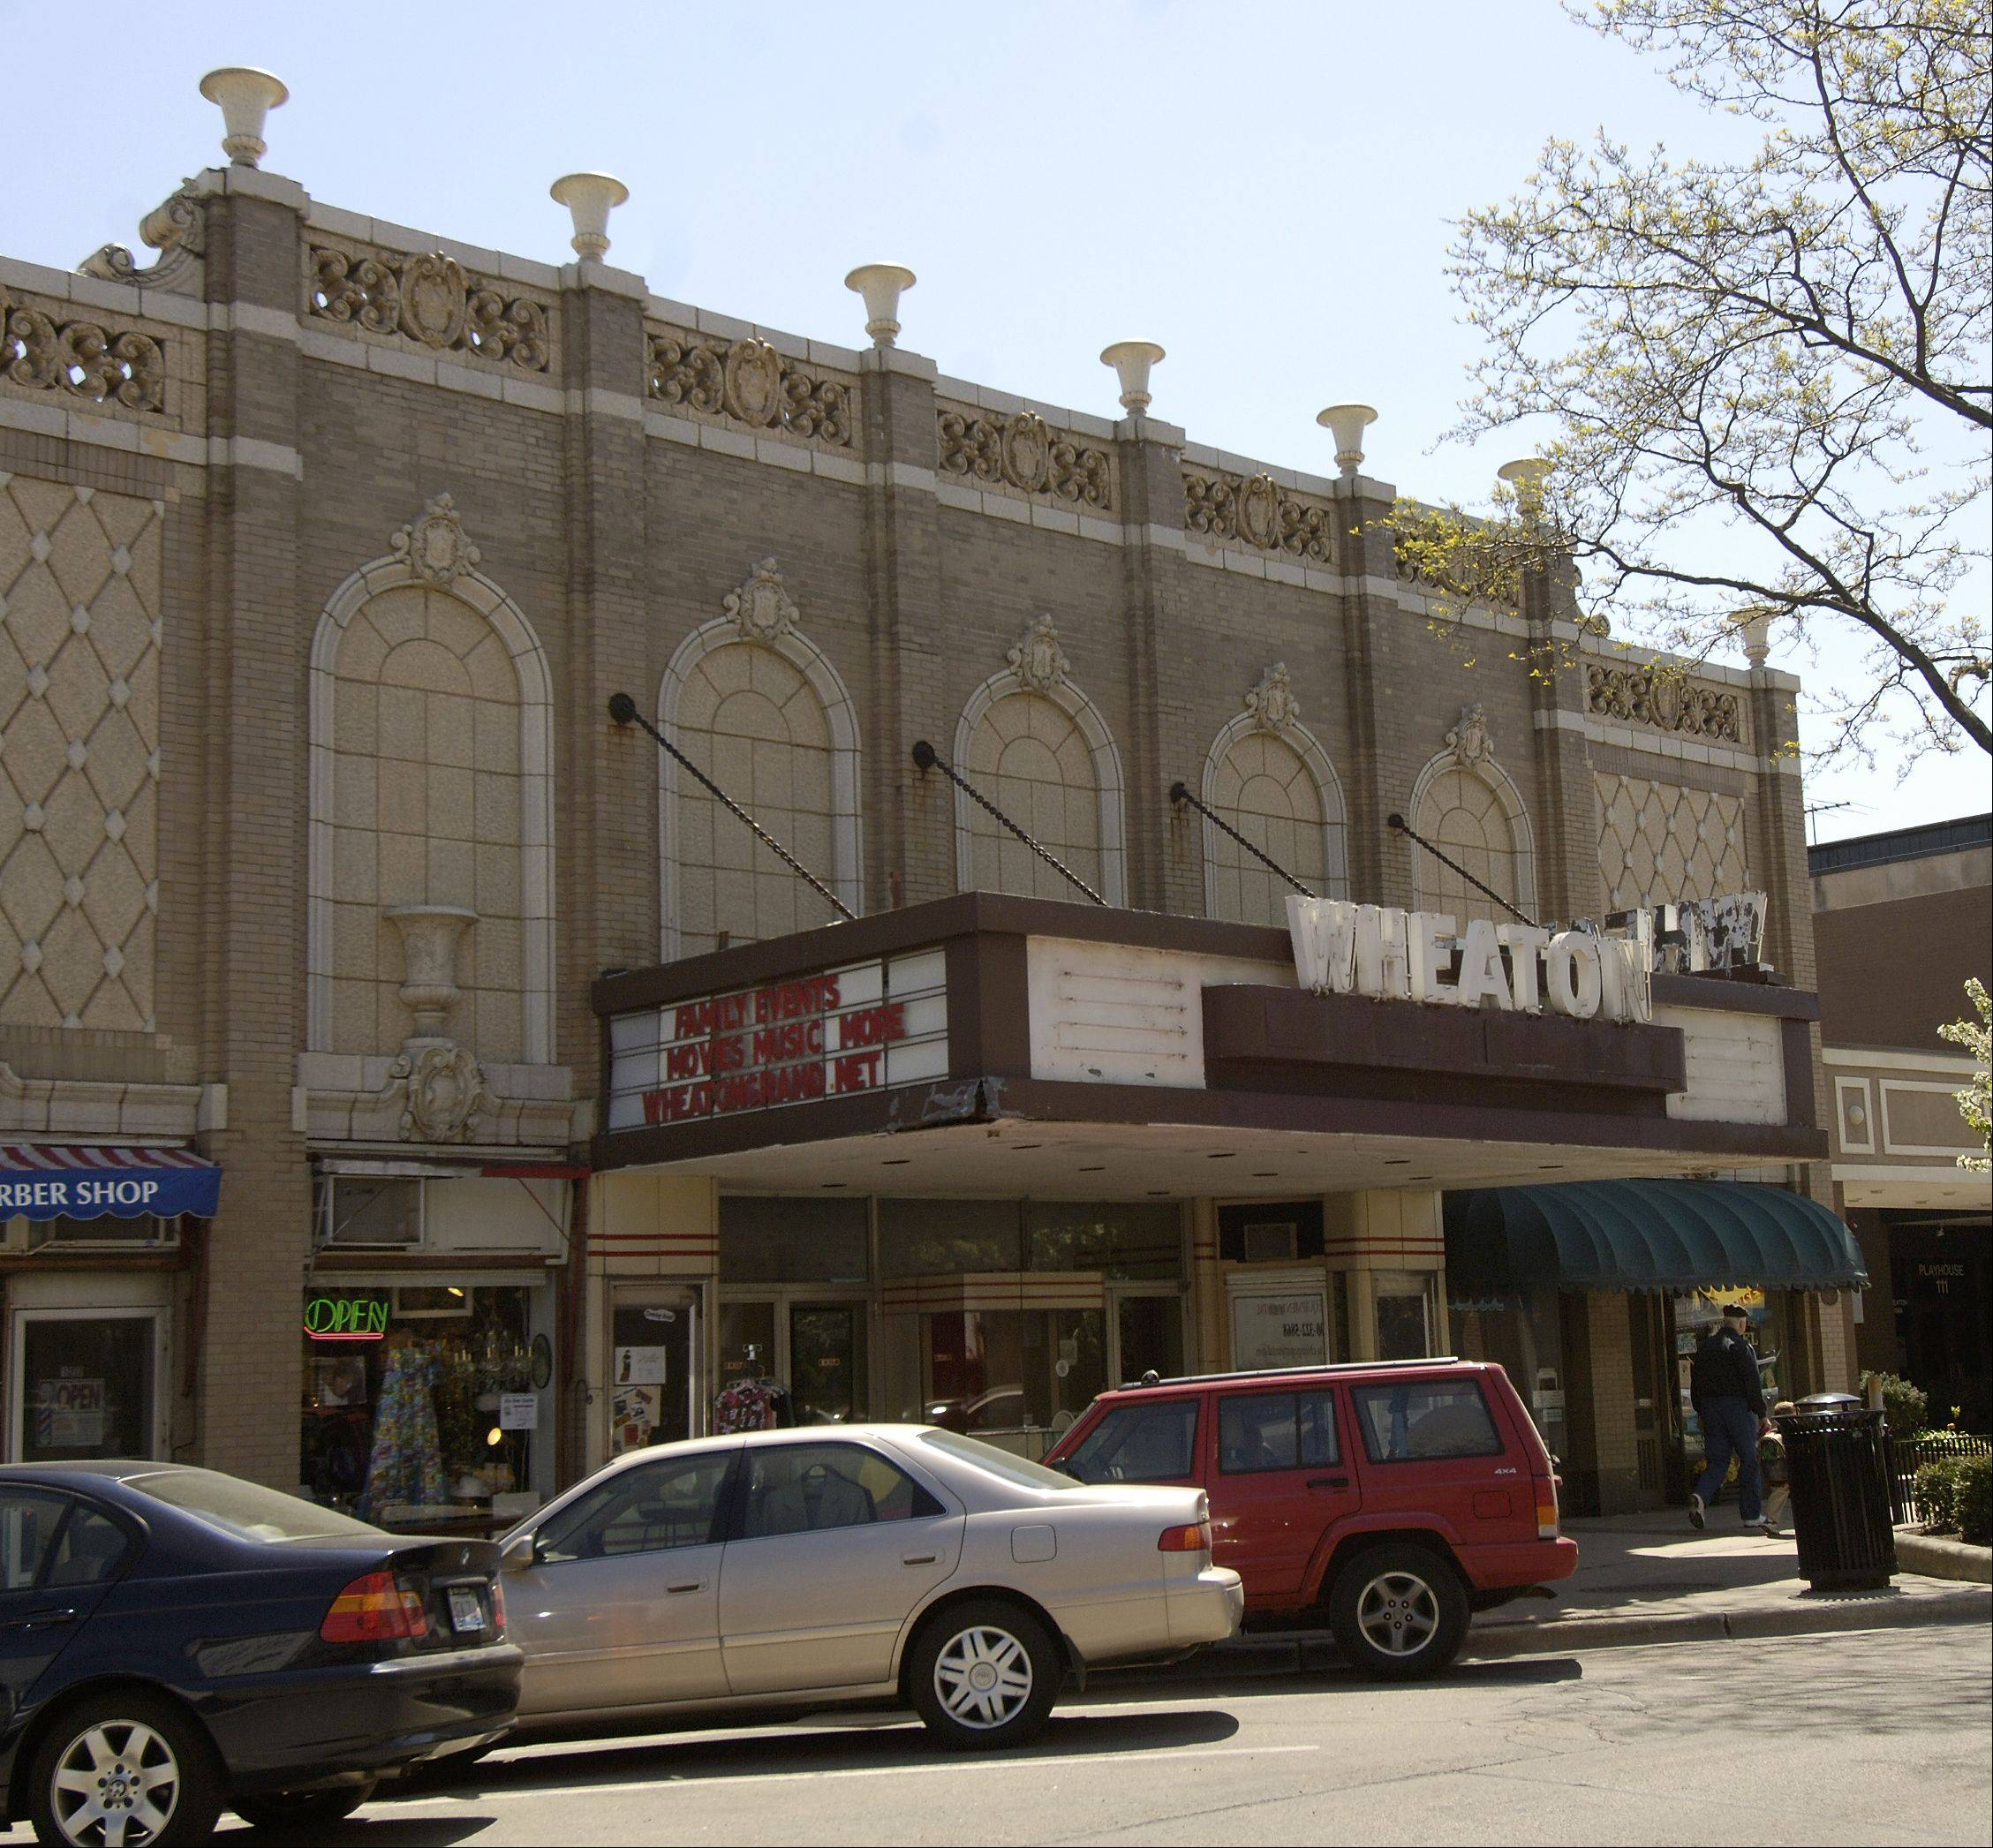 Supporters say with two building additions and a ramped-up fundraising drive, a renovated Wheaton Grand Theater could be open in 2015.